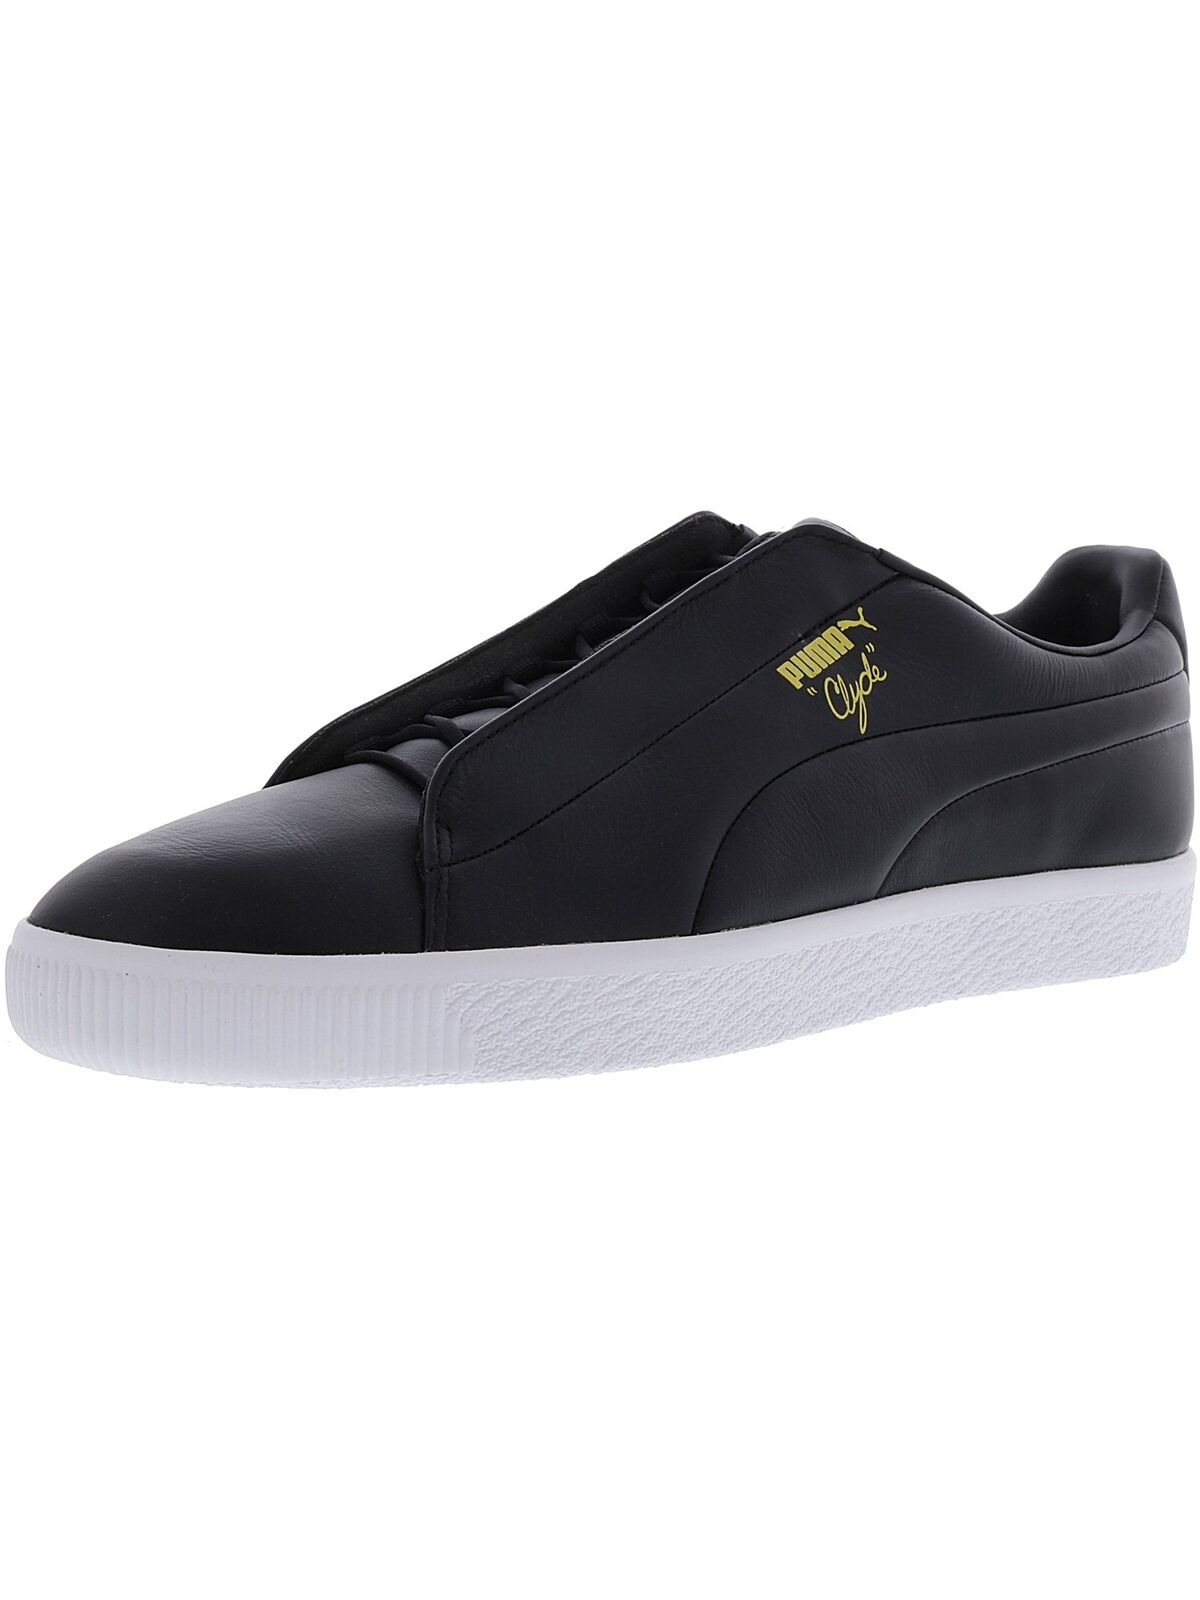 Puma Men's Clyde Fashion Leather Ankle-High Sneaker